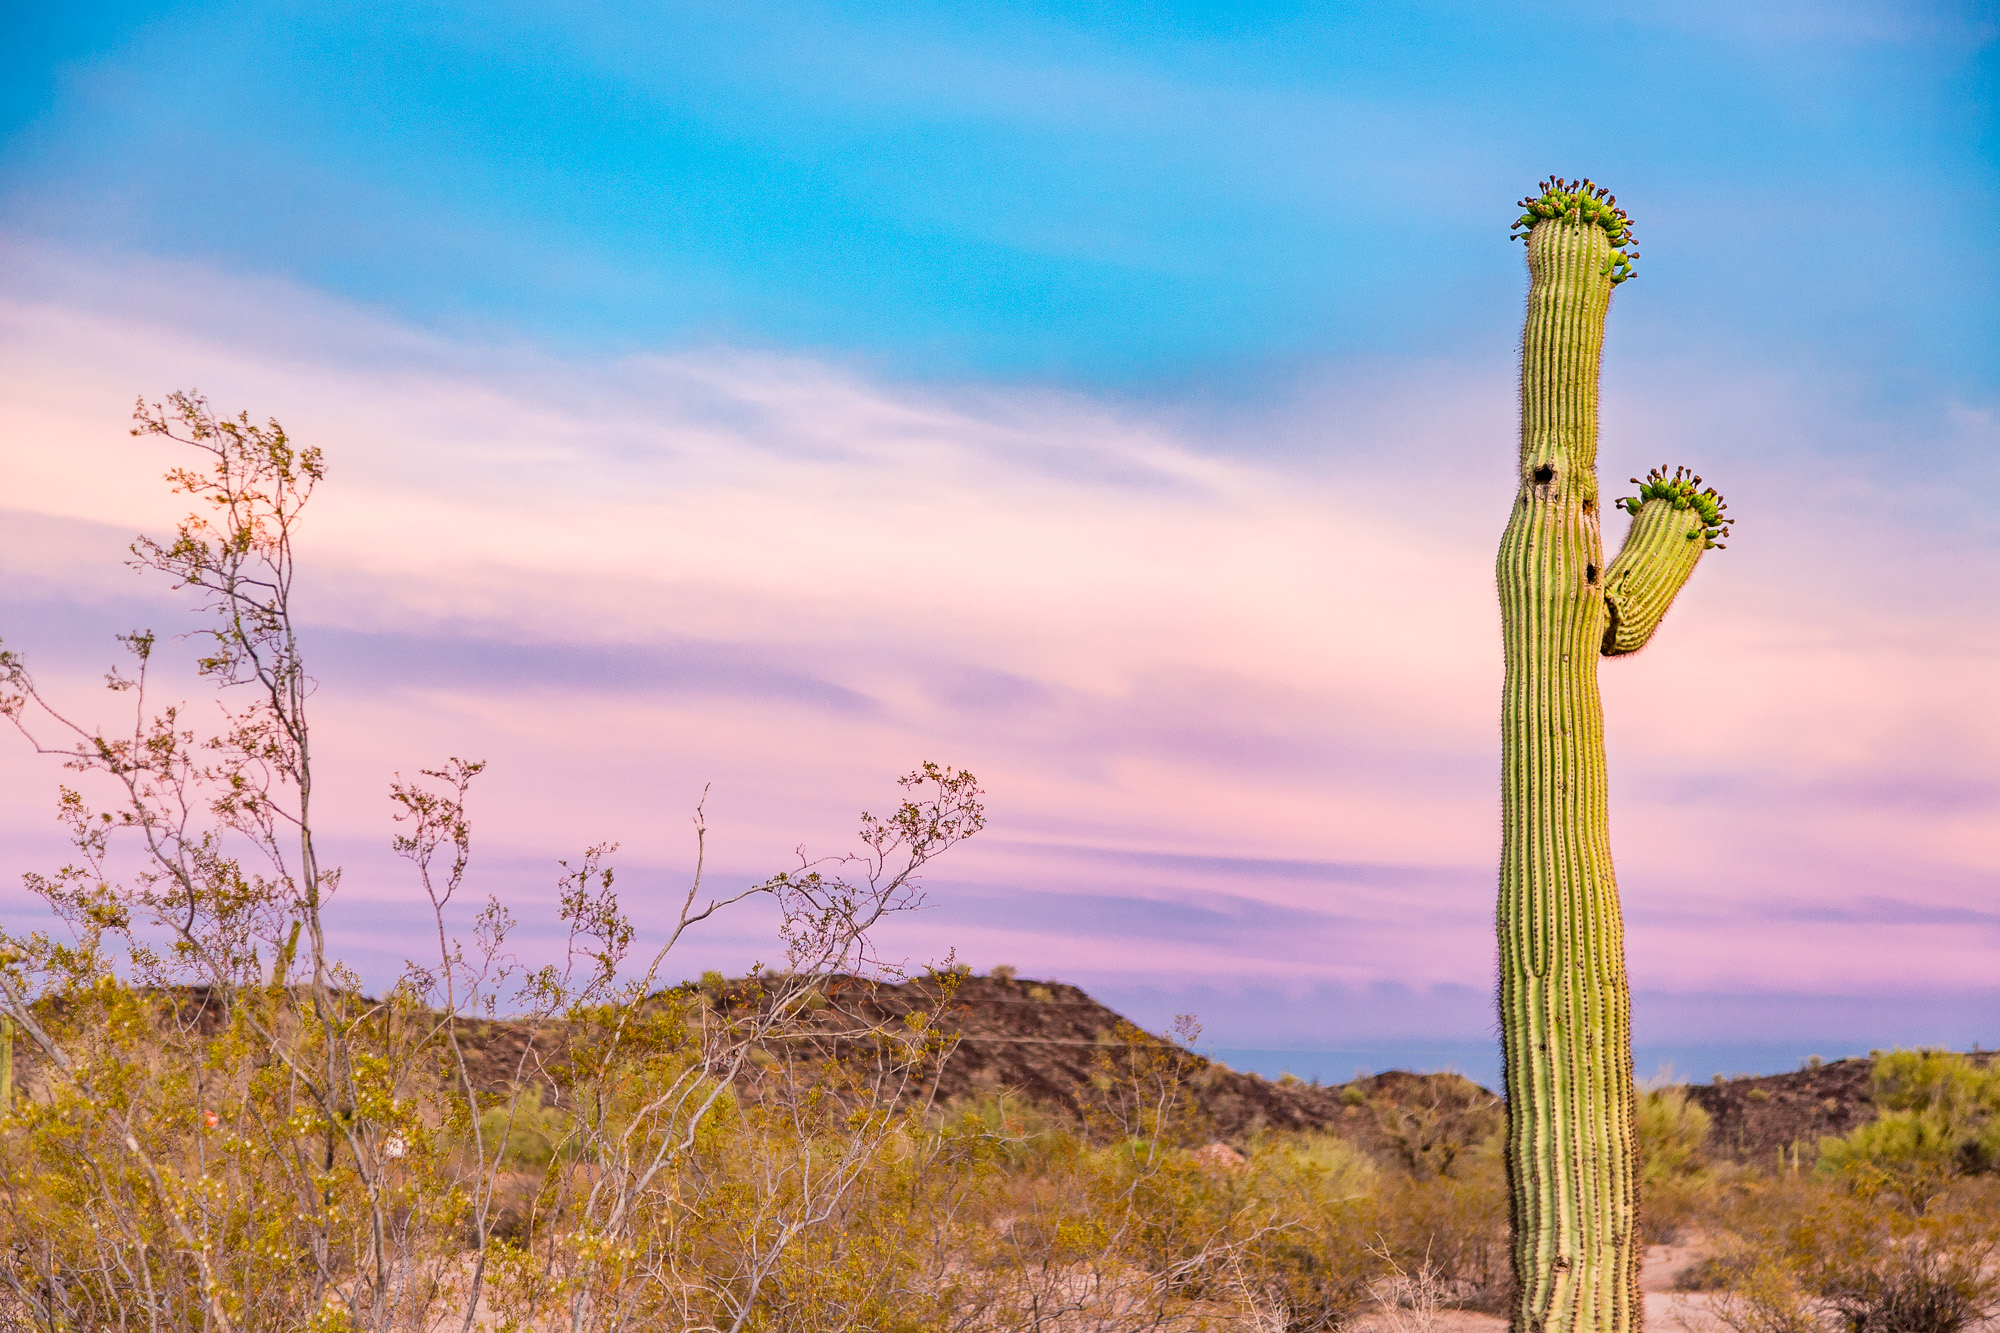 A saguaro cactus in arizona at sunset.